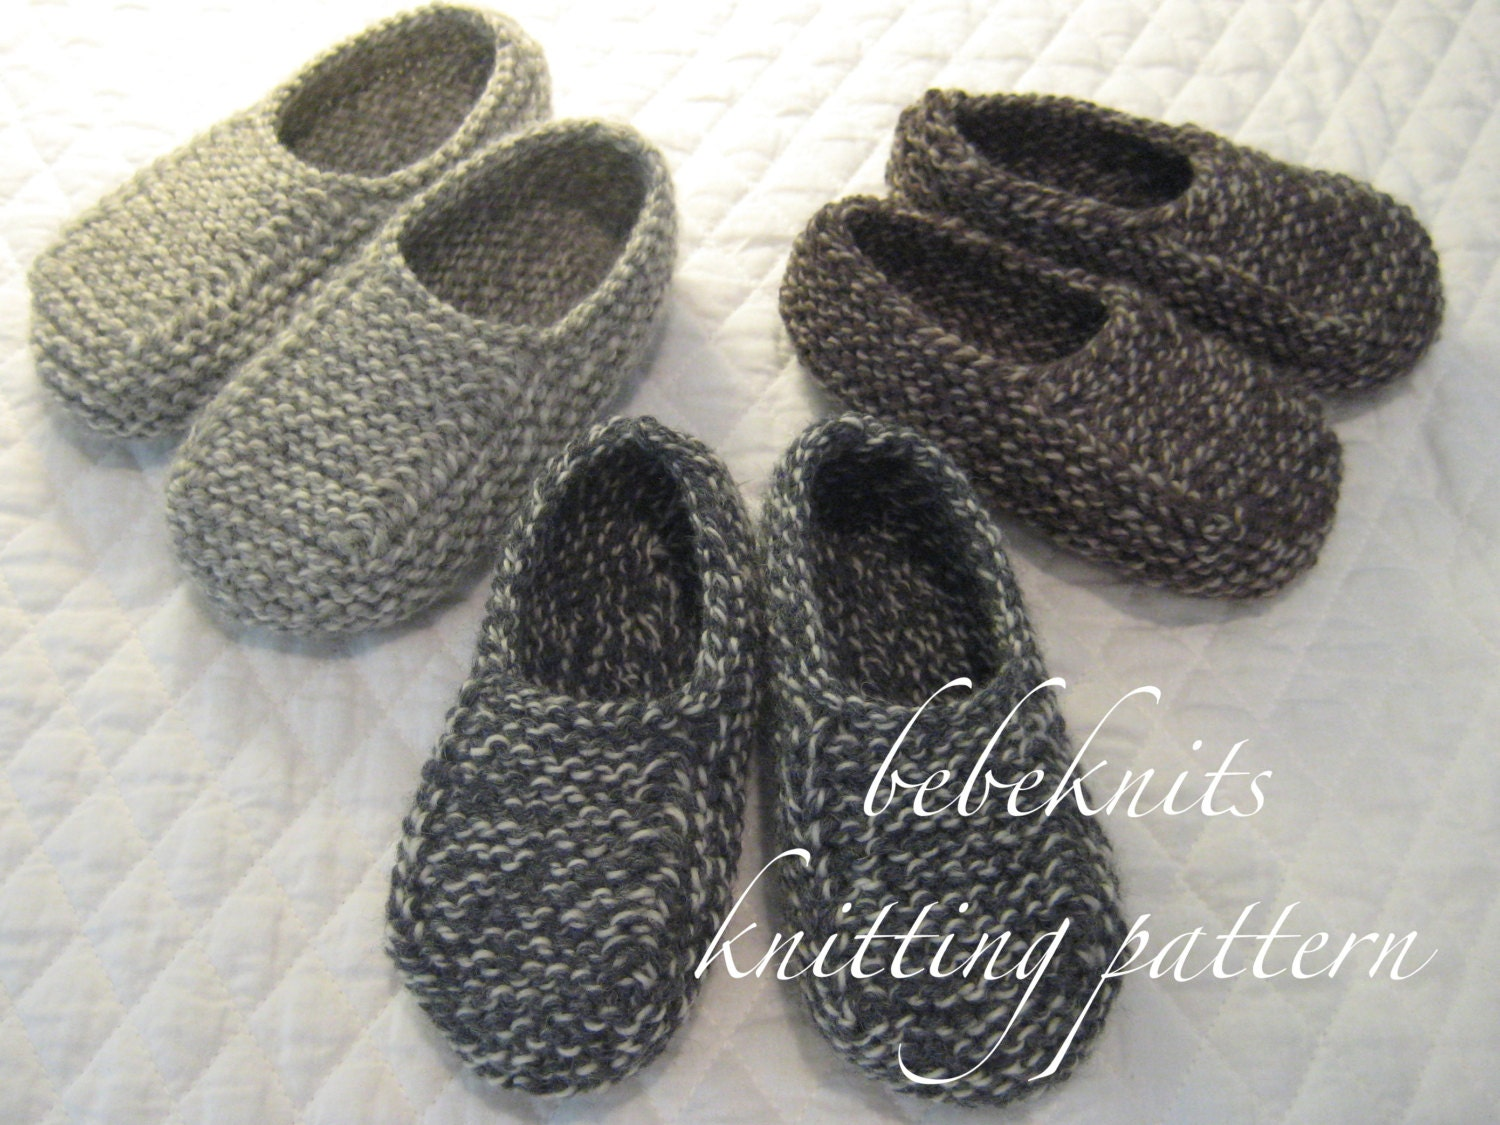 Bebeknits Normandy Toddler Slippers Knitting Pattern in 3